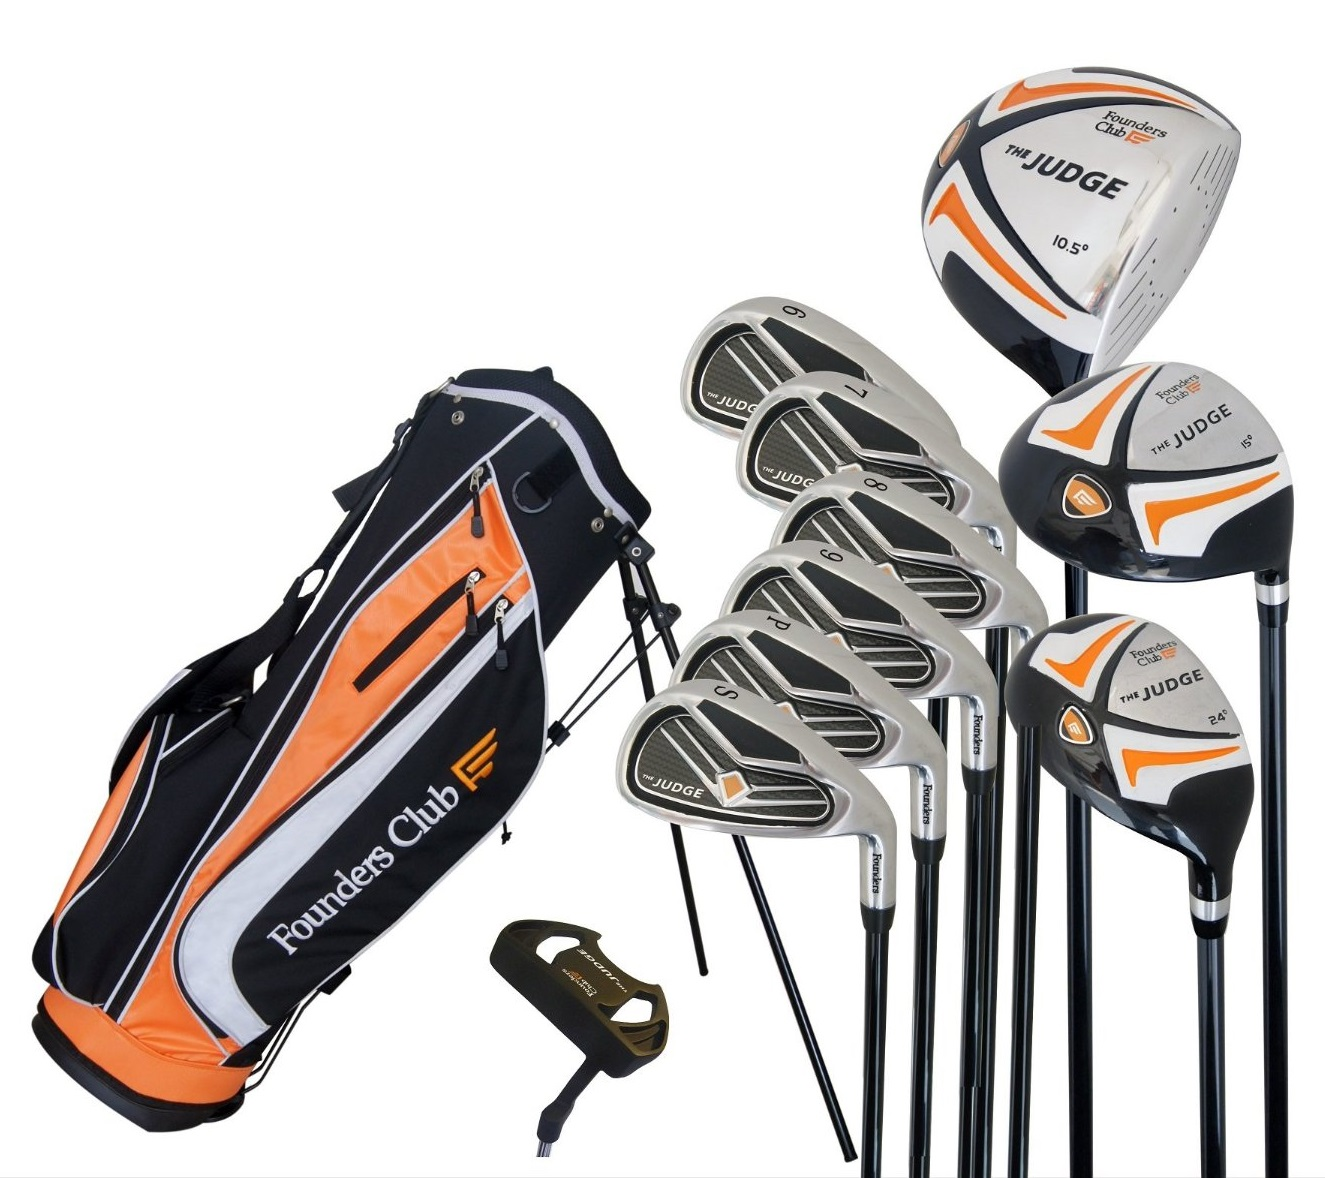 Mens Founders Club The Judge Complete Golf Club Set with Stand Bag